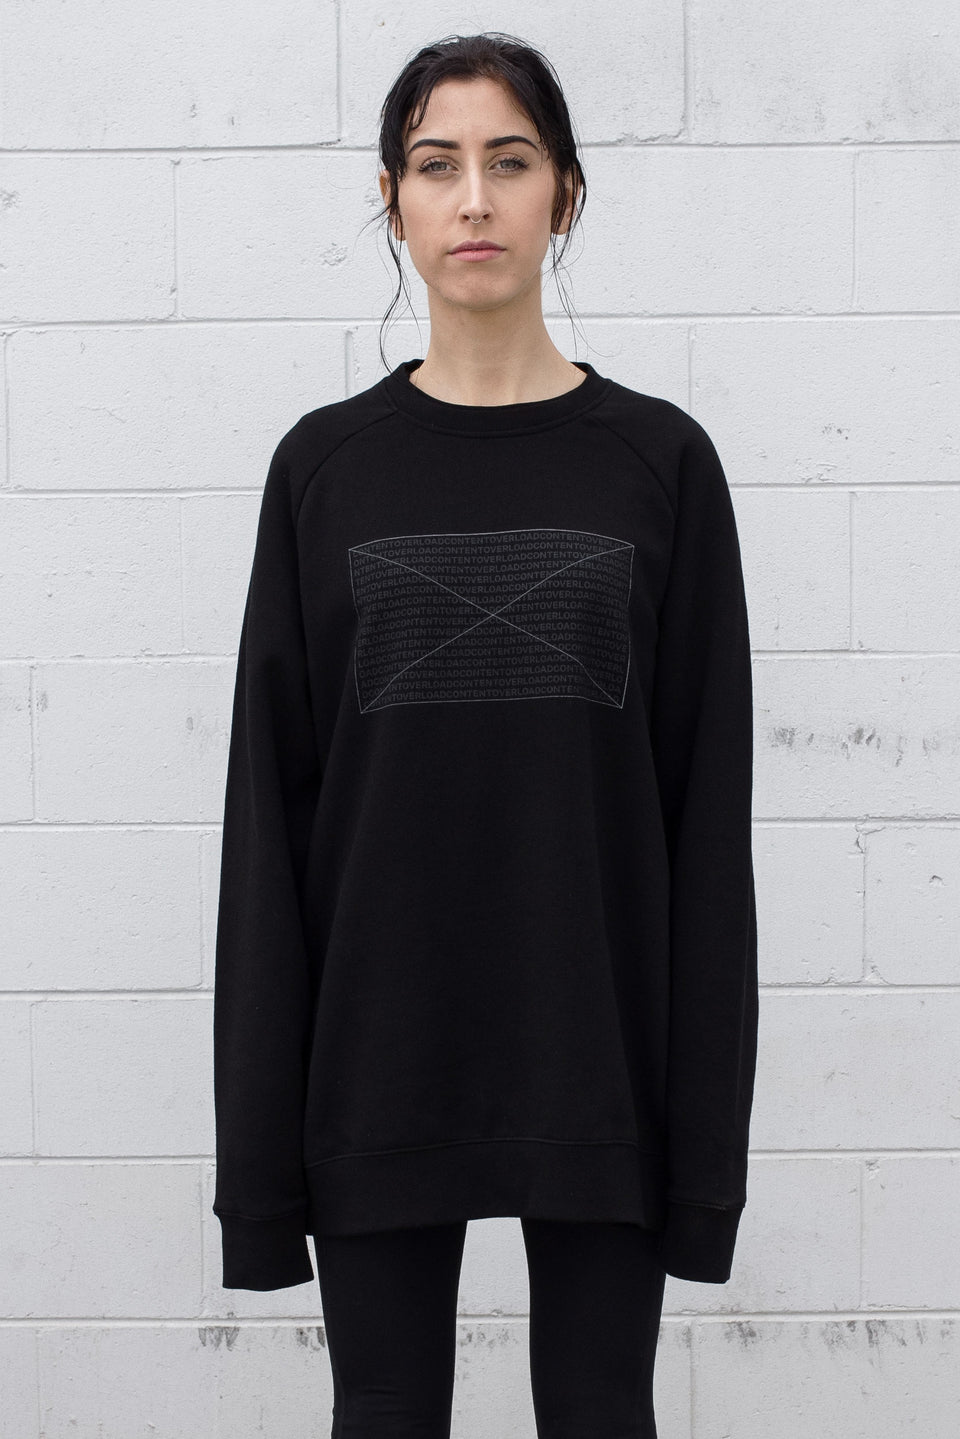 Loading Black Sweatshirt